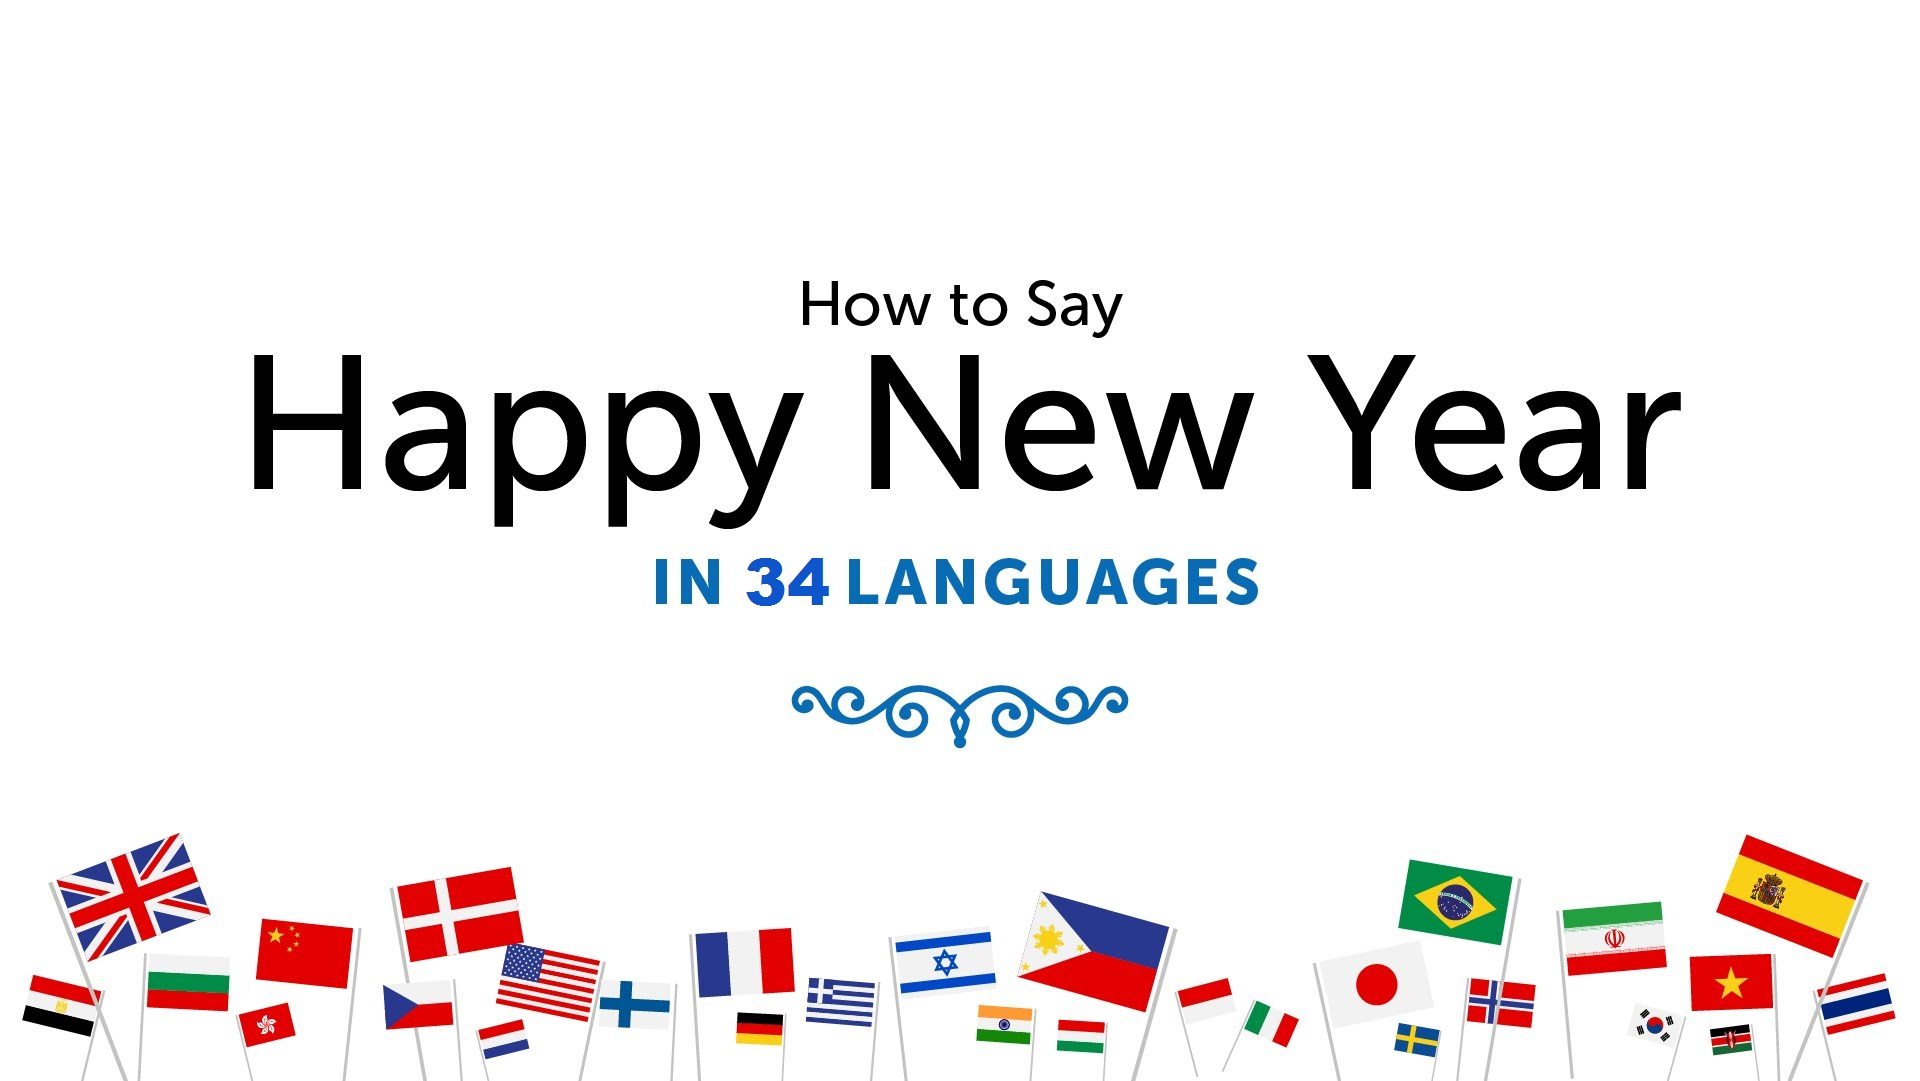 How To Say Happy New Year in 34 Languages